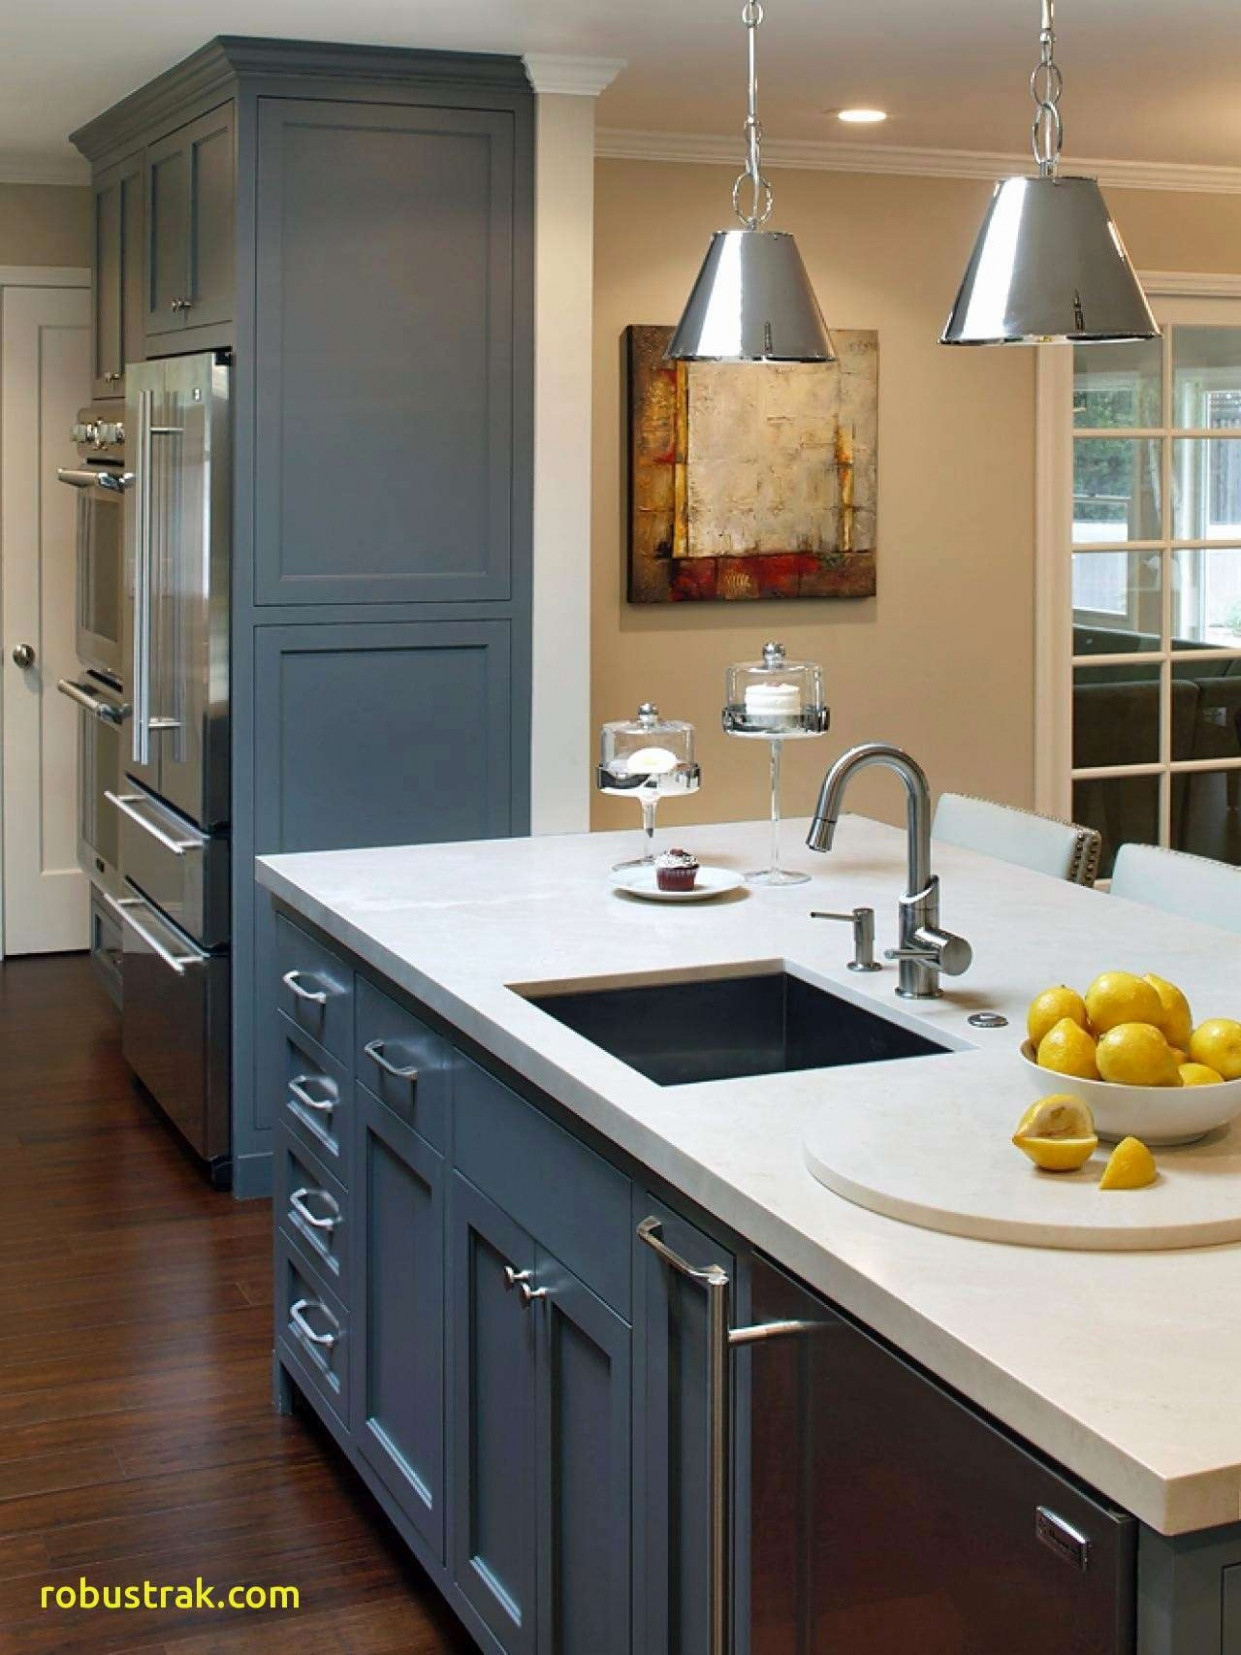 light hardwood floors with dark cabinets of kitchen paint colors with oak cabinets jackolanternliquors throughout design to color luxury exclusive kitchen designs alluring kitchen cabinet 0d bright lights